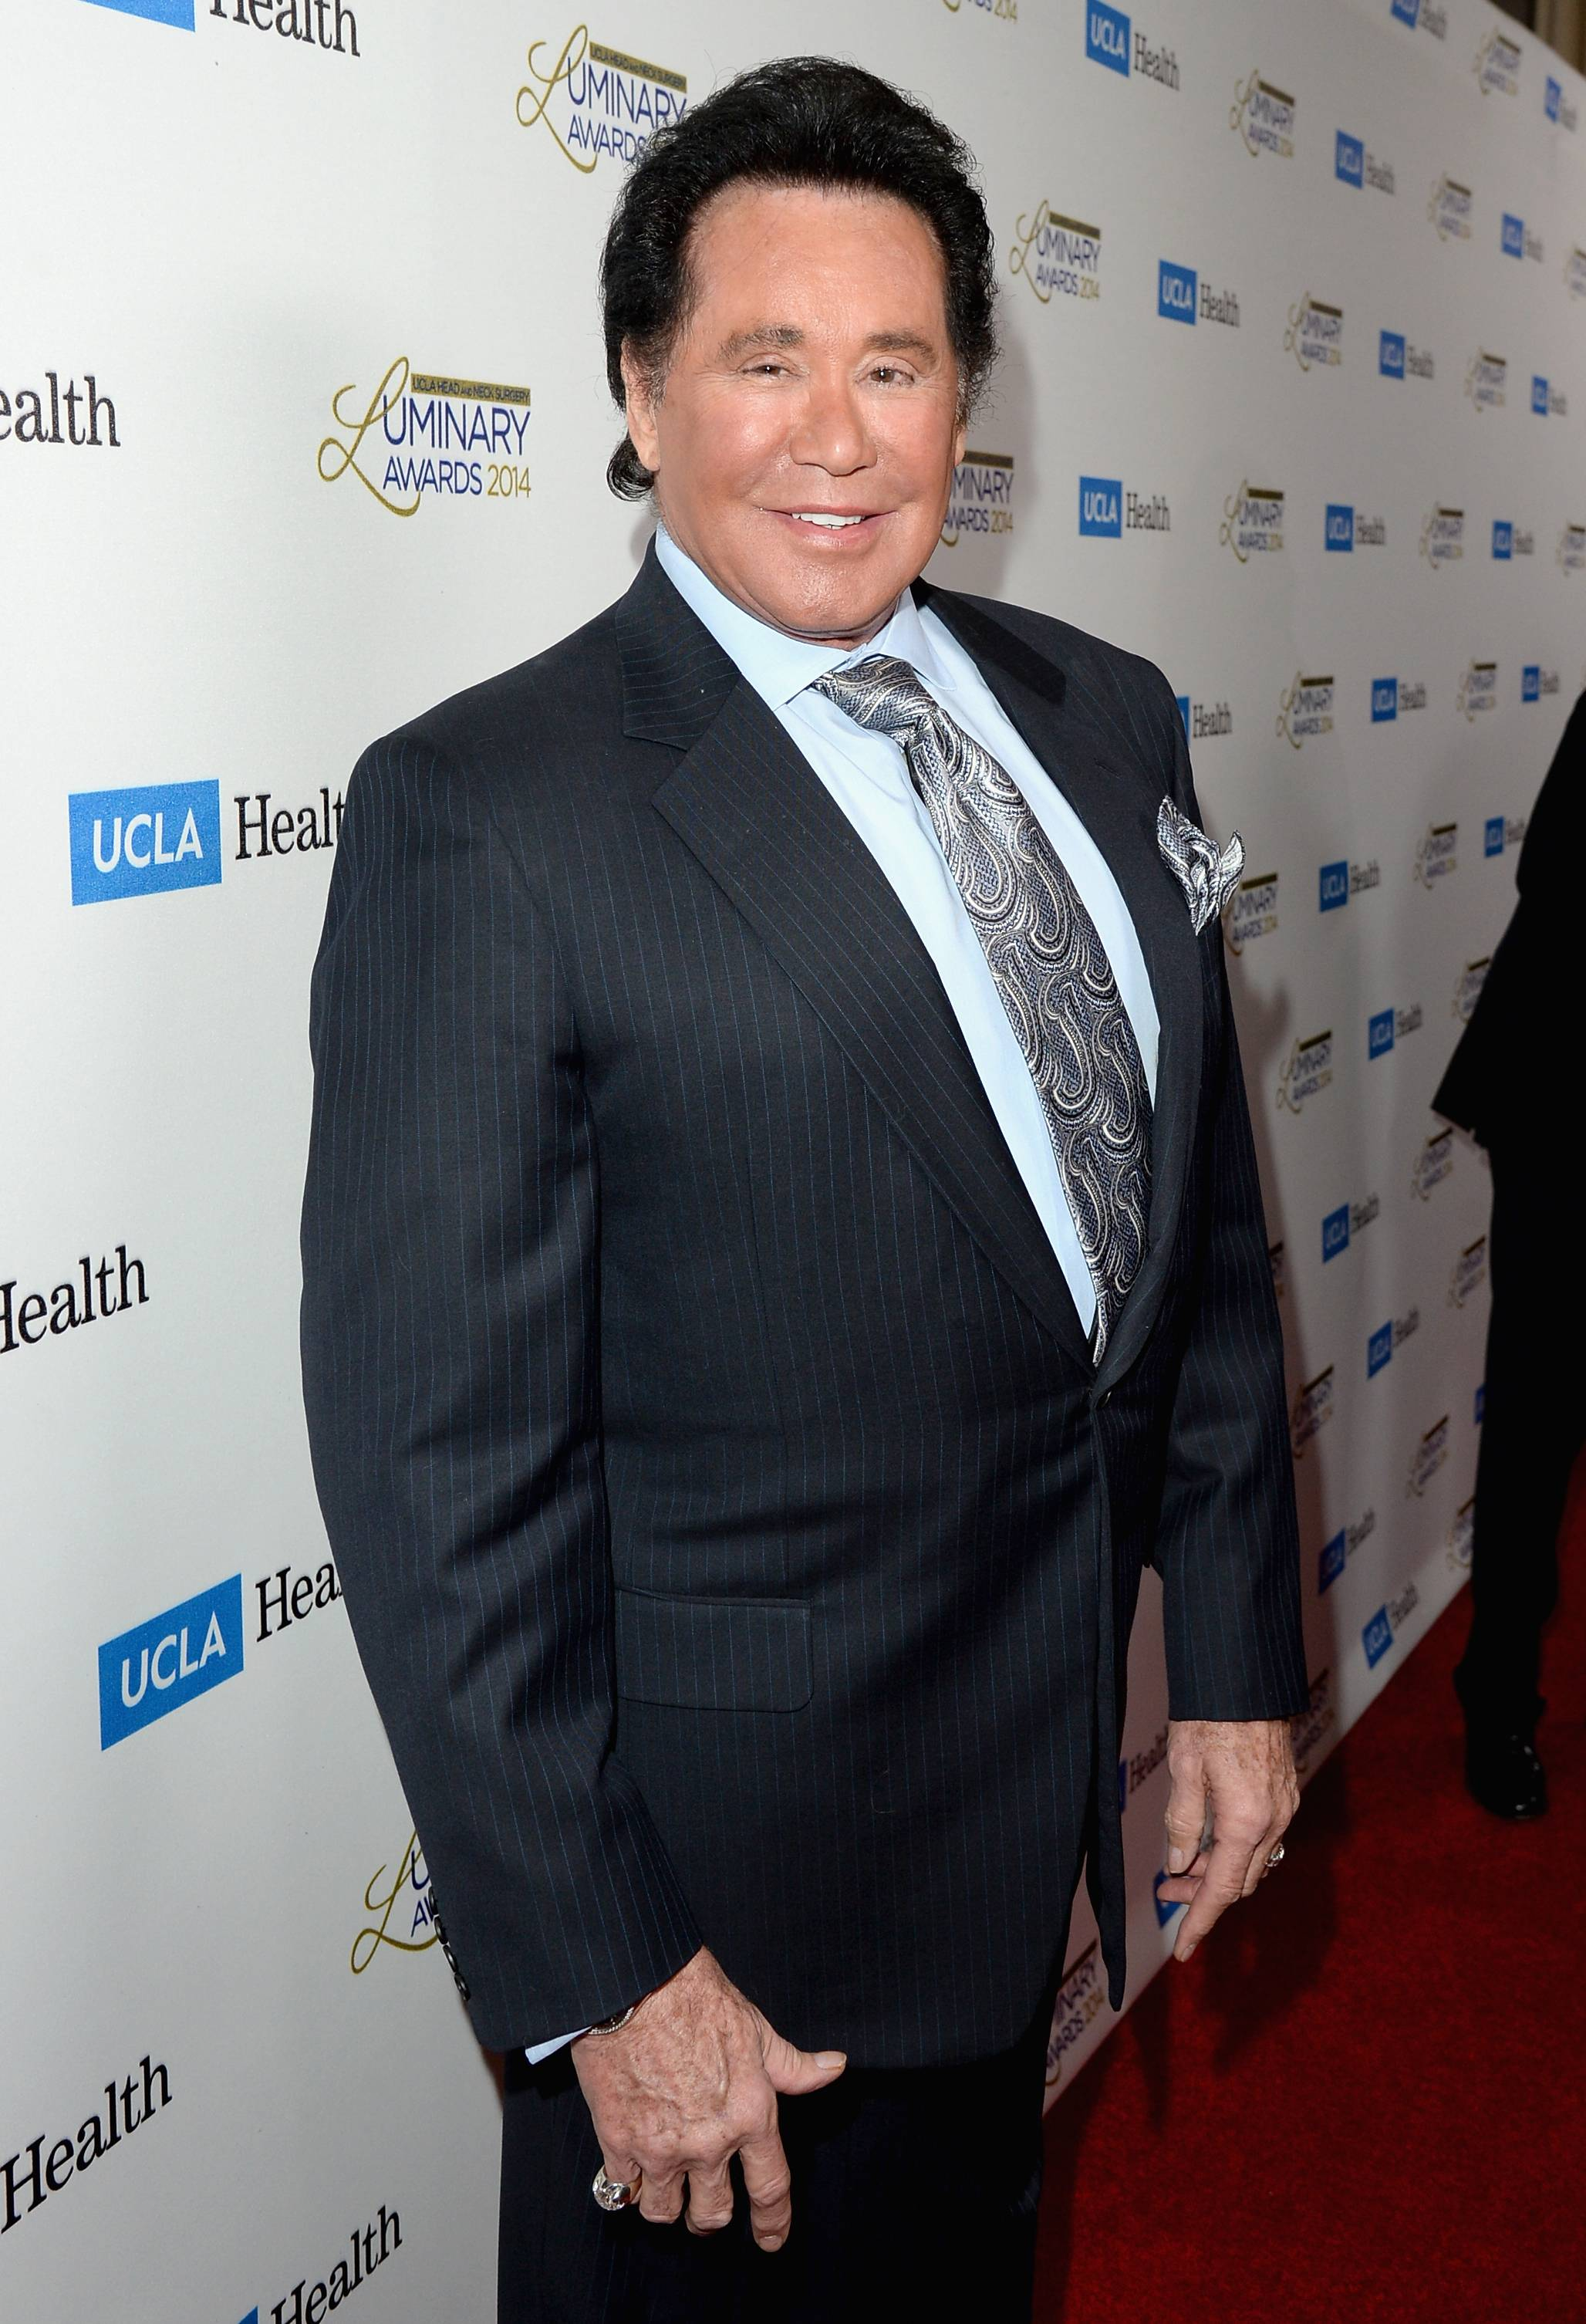 UCLA Head And Neck Surgery Luminary Awards - Red Carpet